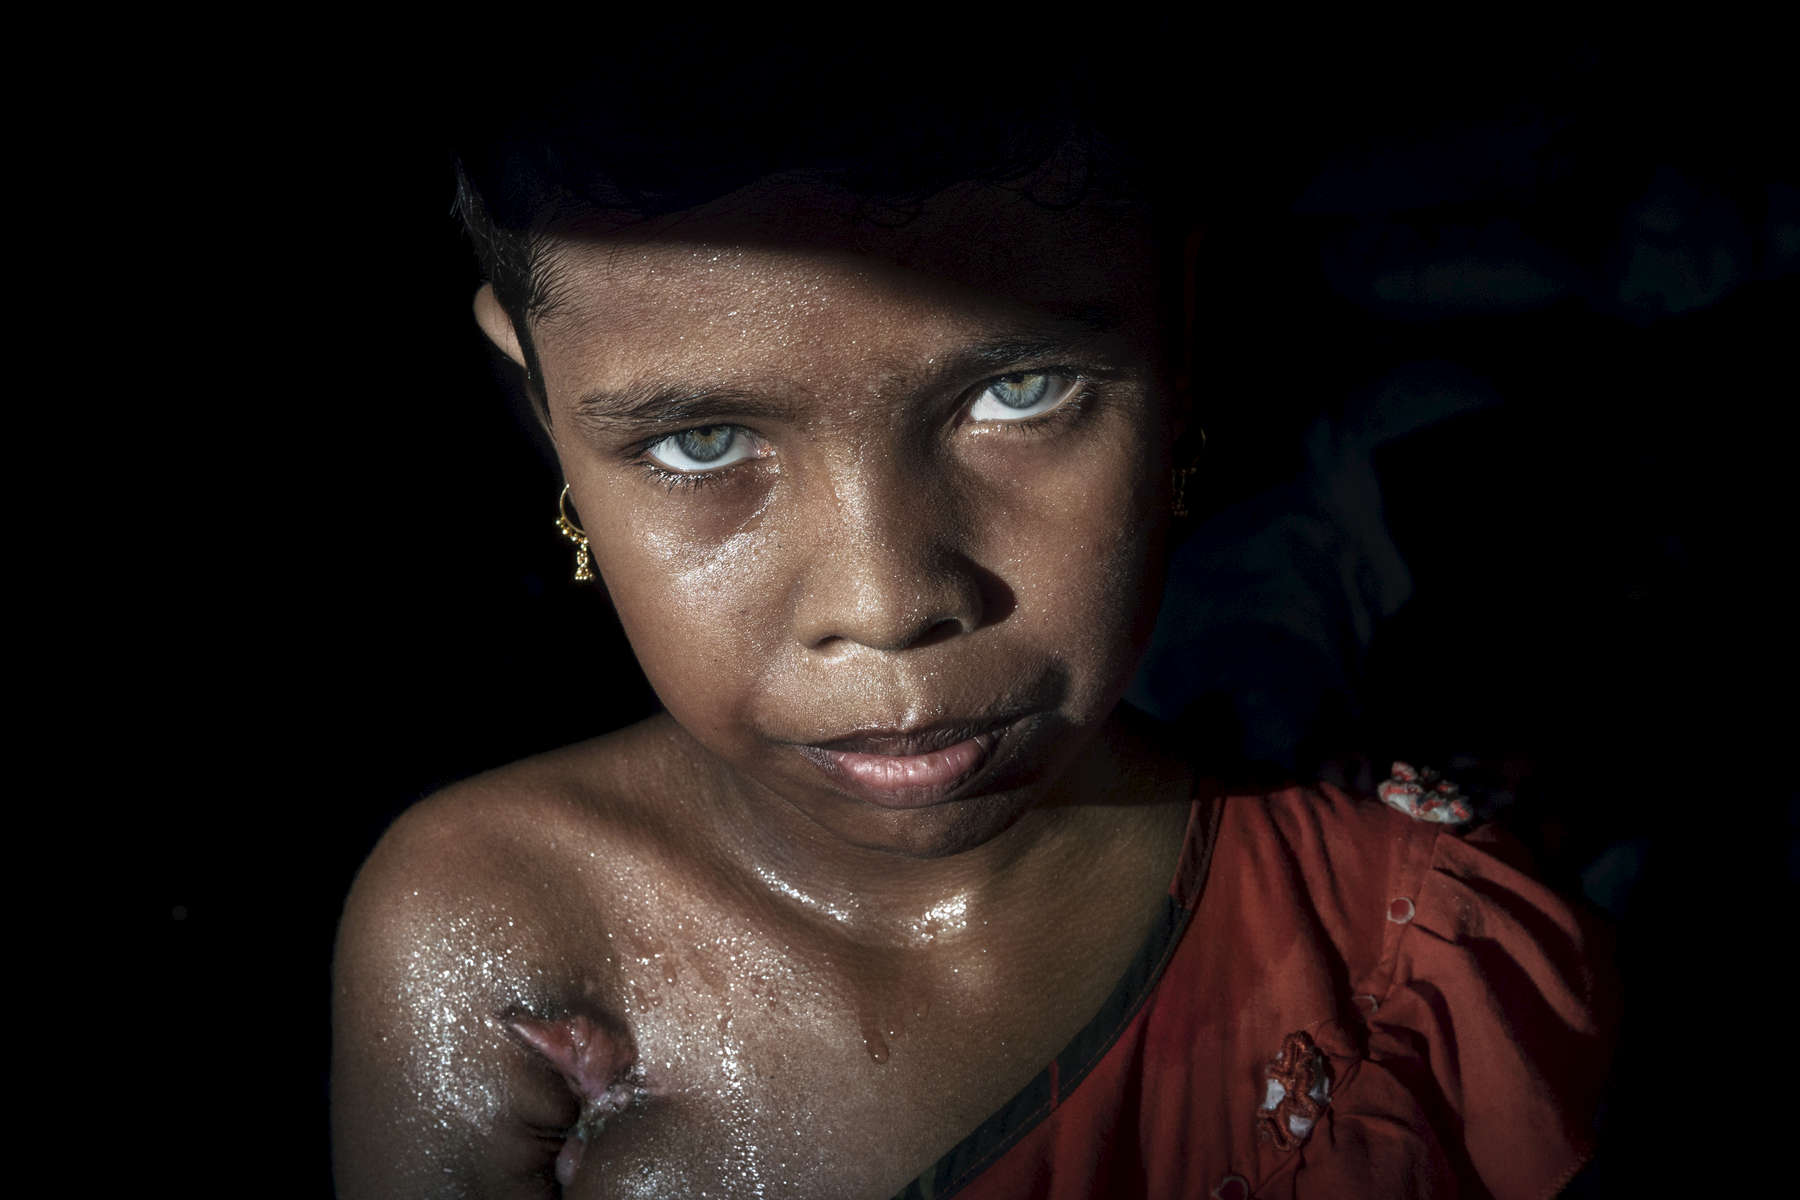 "Oct. 10: Azida Begum, age 11, was shot twice under her arm and her leg by Burmese military, killing her mother as she was fleeing her small village in Myanmar. Azida now lives with her grandmother, her father died years back.For years Buddhist majority Myanmar has struggled to deal with a deeply rooted hatred towards the Rohingya in western Rakhine state. The Muslim ethnic minority were always considered illegal immigrants from Bangladesh and denied the rights of citizenship. According to Human Rights Watch, the 1982 laws {quote}effectively deny to the Rohingya the possibility of acquiring a nationality "". Myanmar's government also enforced severe restrictions on freedom of movement, state education and civil service jobs and health care. The refugee emergency unfolded in late August after an attack on state security forces by Rohingya insurgents, triggering a brutal military crackdown that has forced more than half of the country's 1.1 million population fleeing to neighboring Bangladesh creating the fastest cross-border exodus ever witnessed with over 655,000 new arrivals."